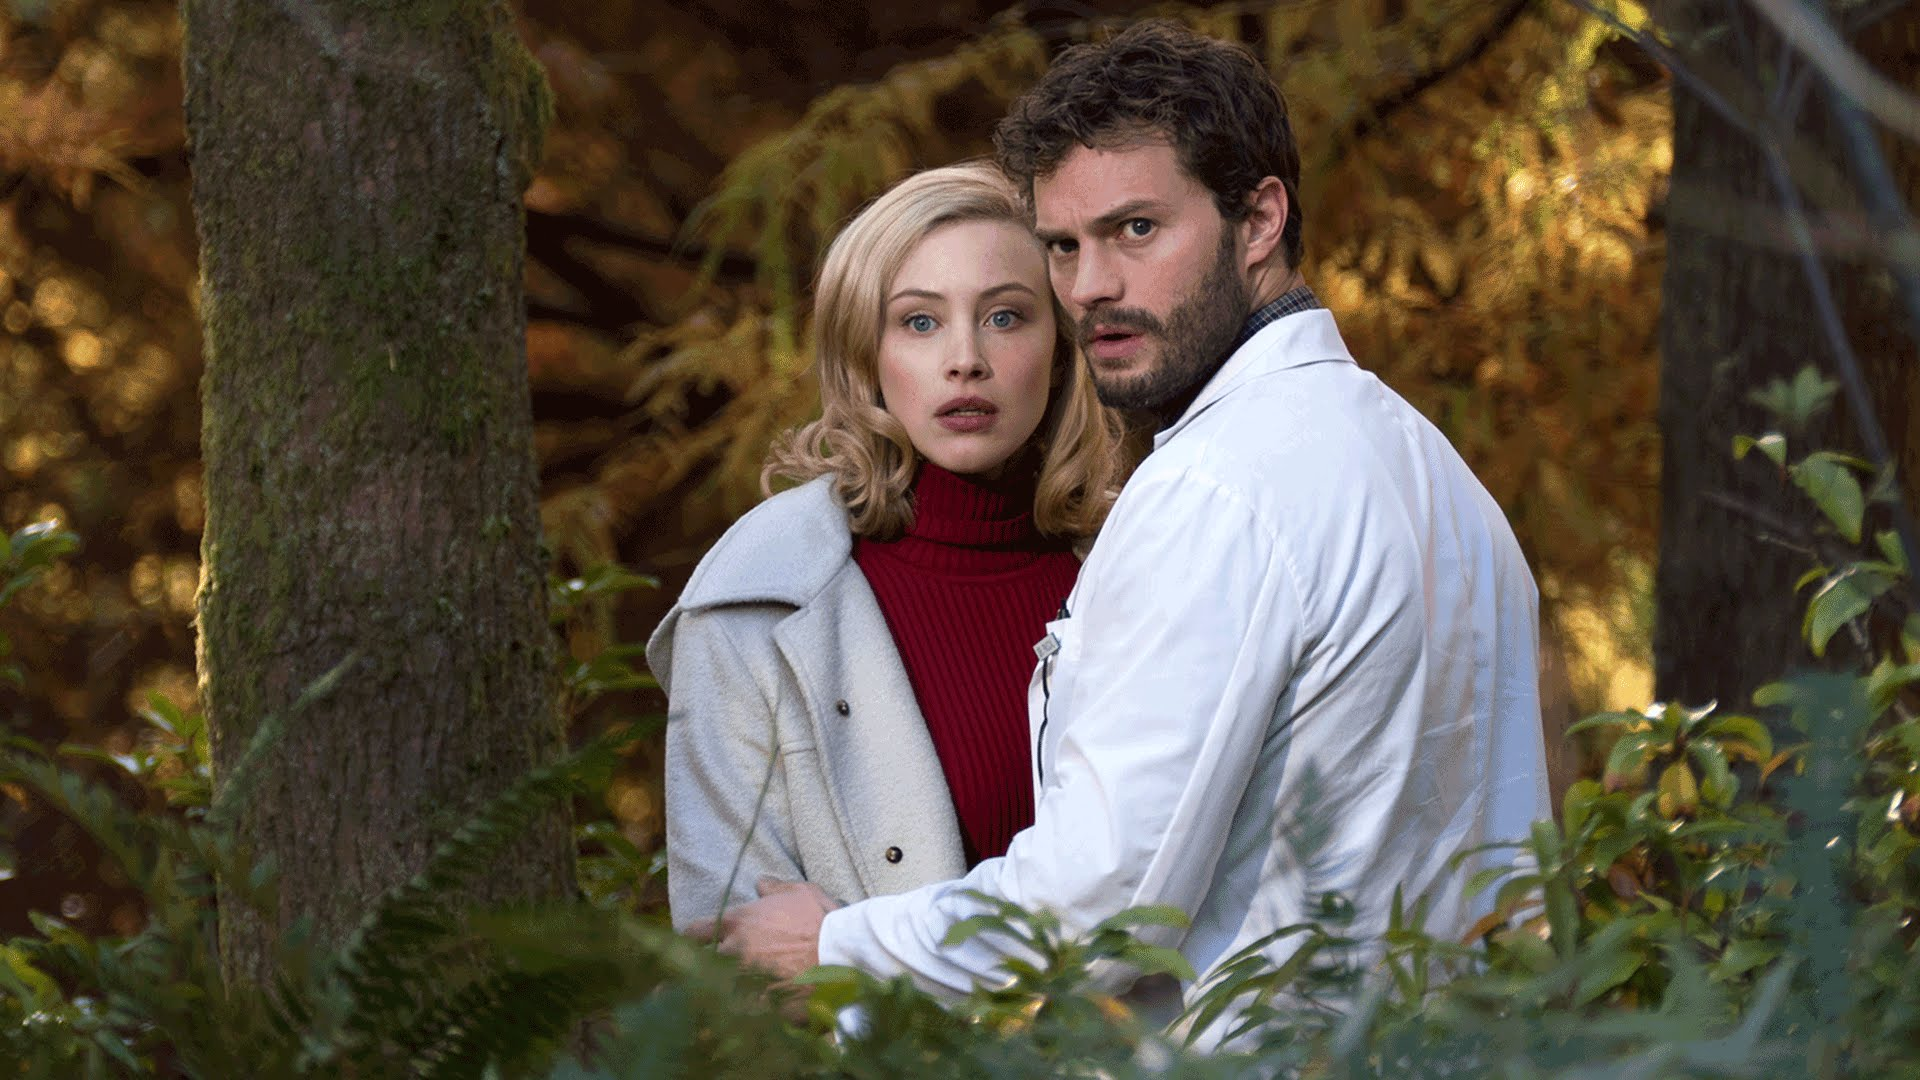 The 9th Life of Louis Drax – Official Trailer